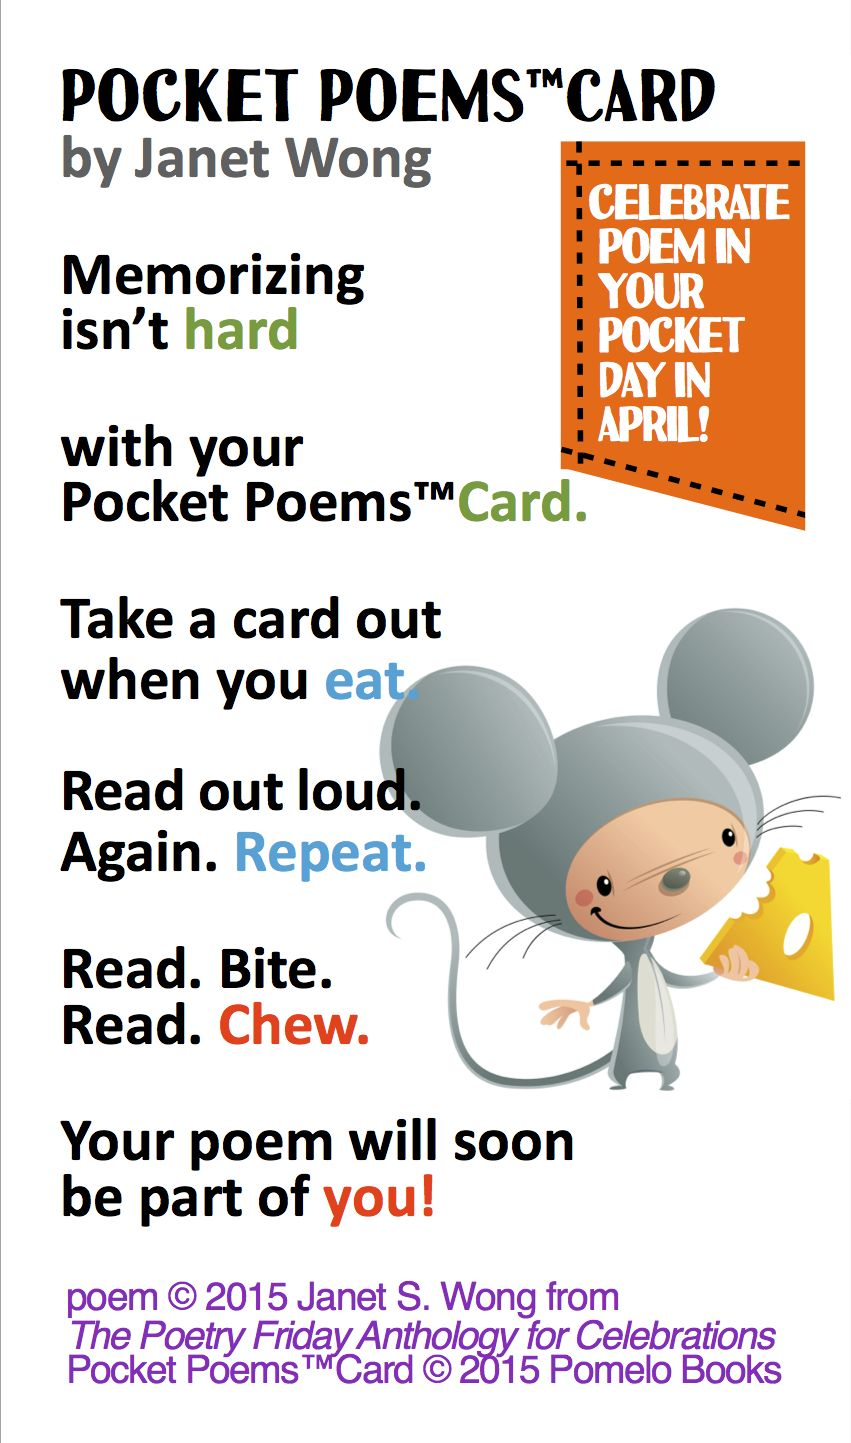 Pocket Poems Card By Janet Wong For Poem In Your Pocket Day In April From The Poetry Friday Anthology Poetry For Kids How To Memorize Things Teaching Poetry